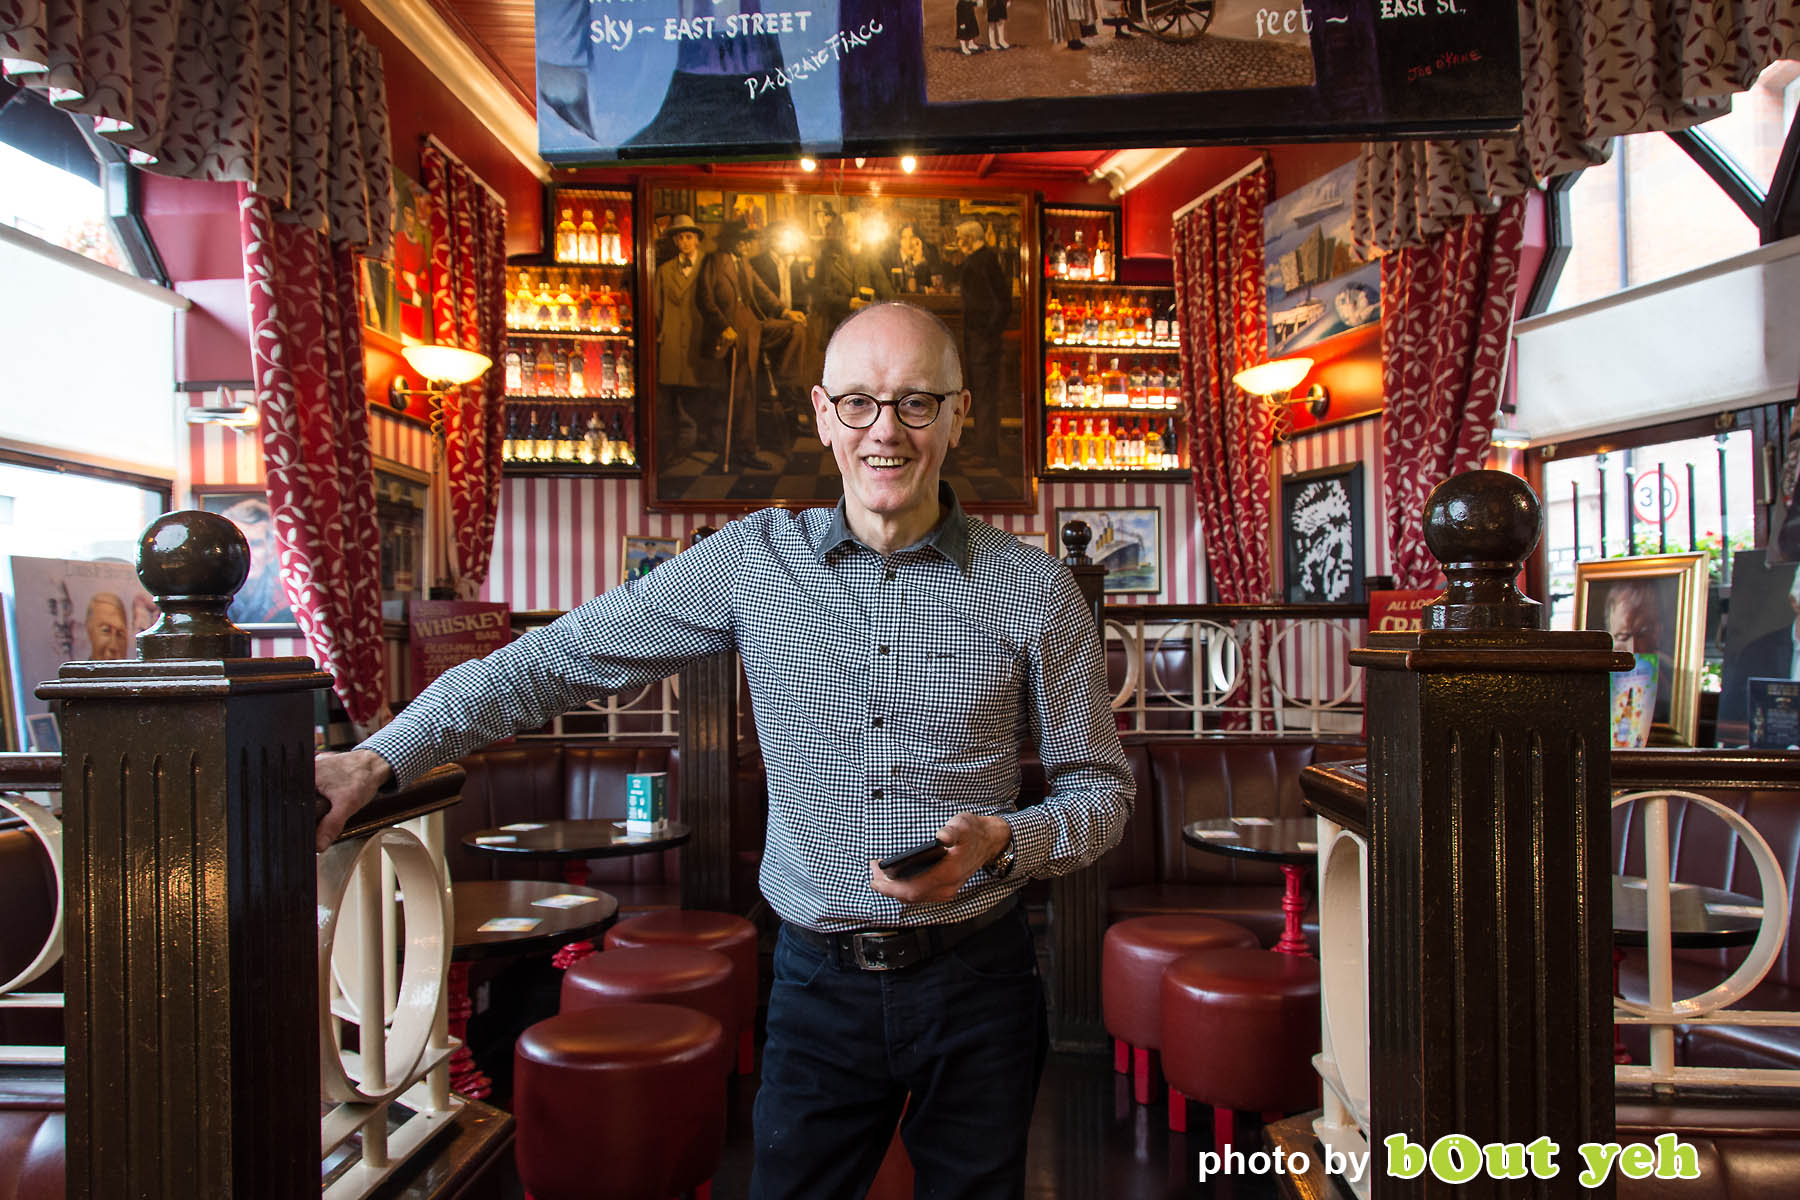 John Bittles, Bittles Bar, by Bout Yeh photographers Belfast - photo 5013. Editorial feature about John Bittles, owner of Bittles Bar, Belfast.